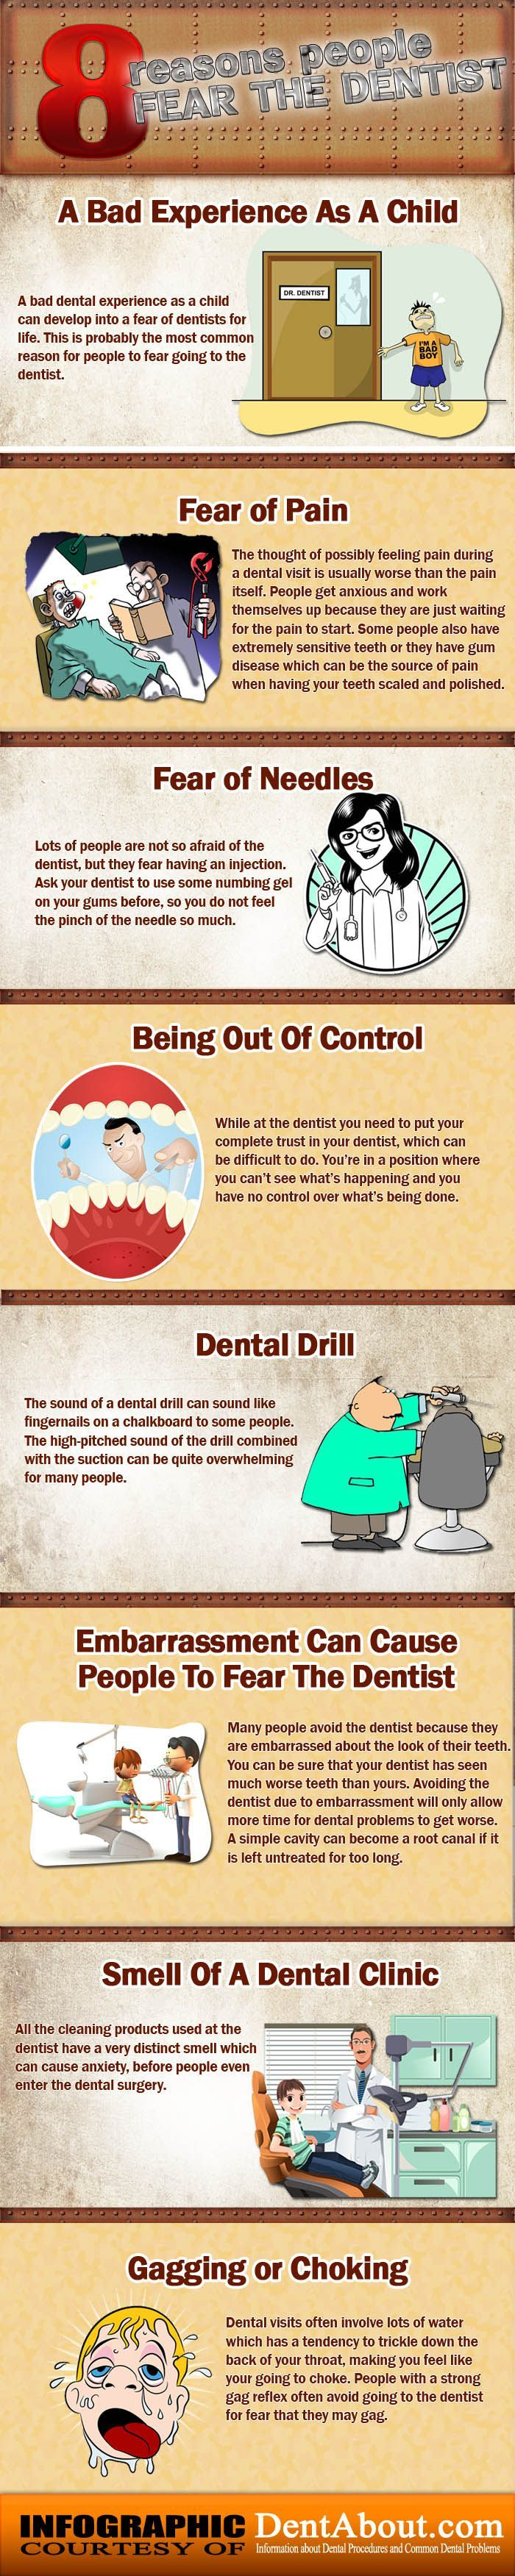 10 Dental Care Tips During the Winter to Avoid Teeth Pain -